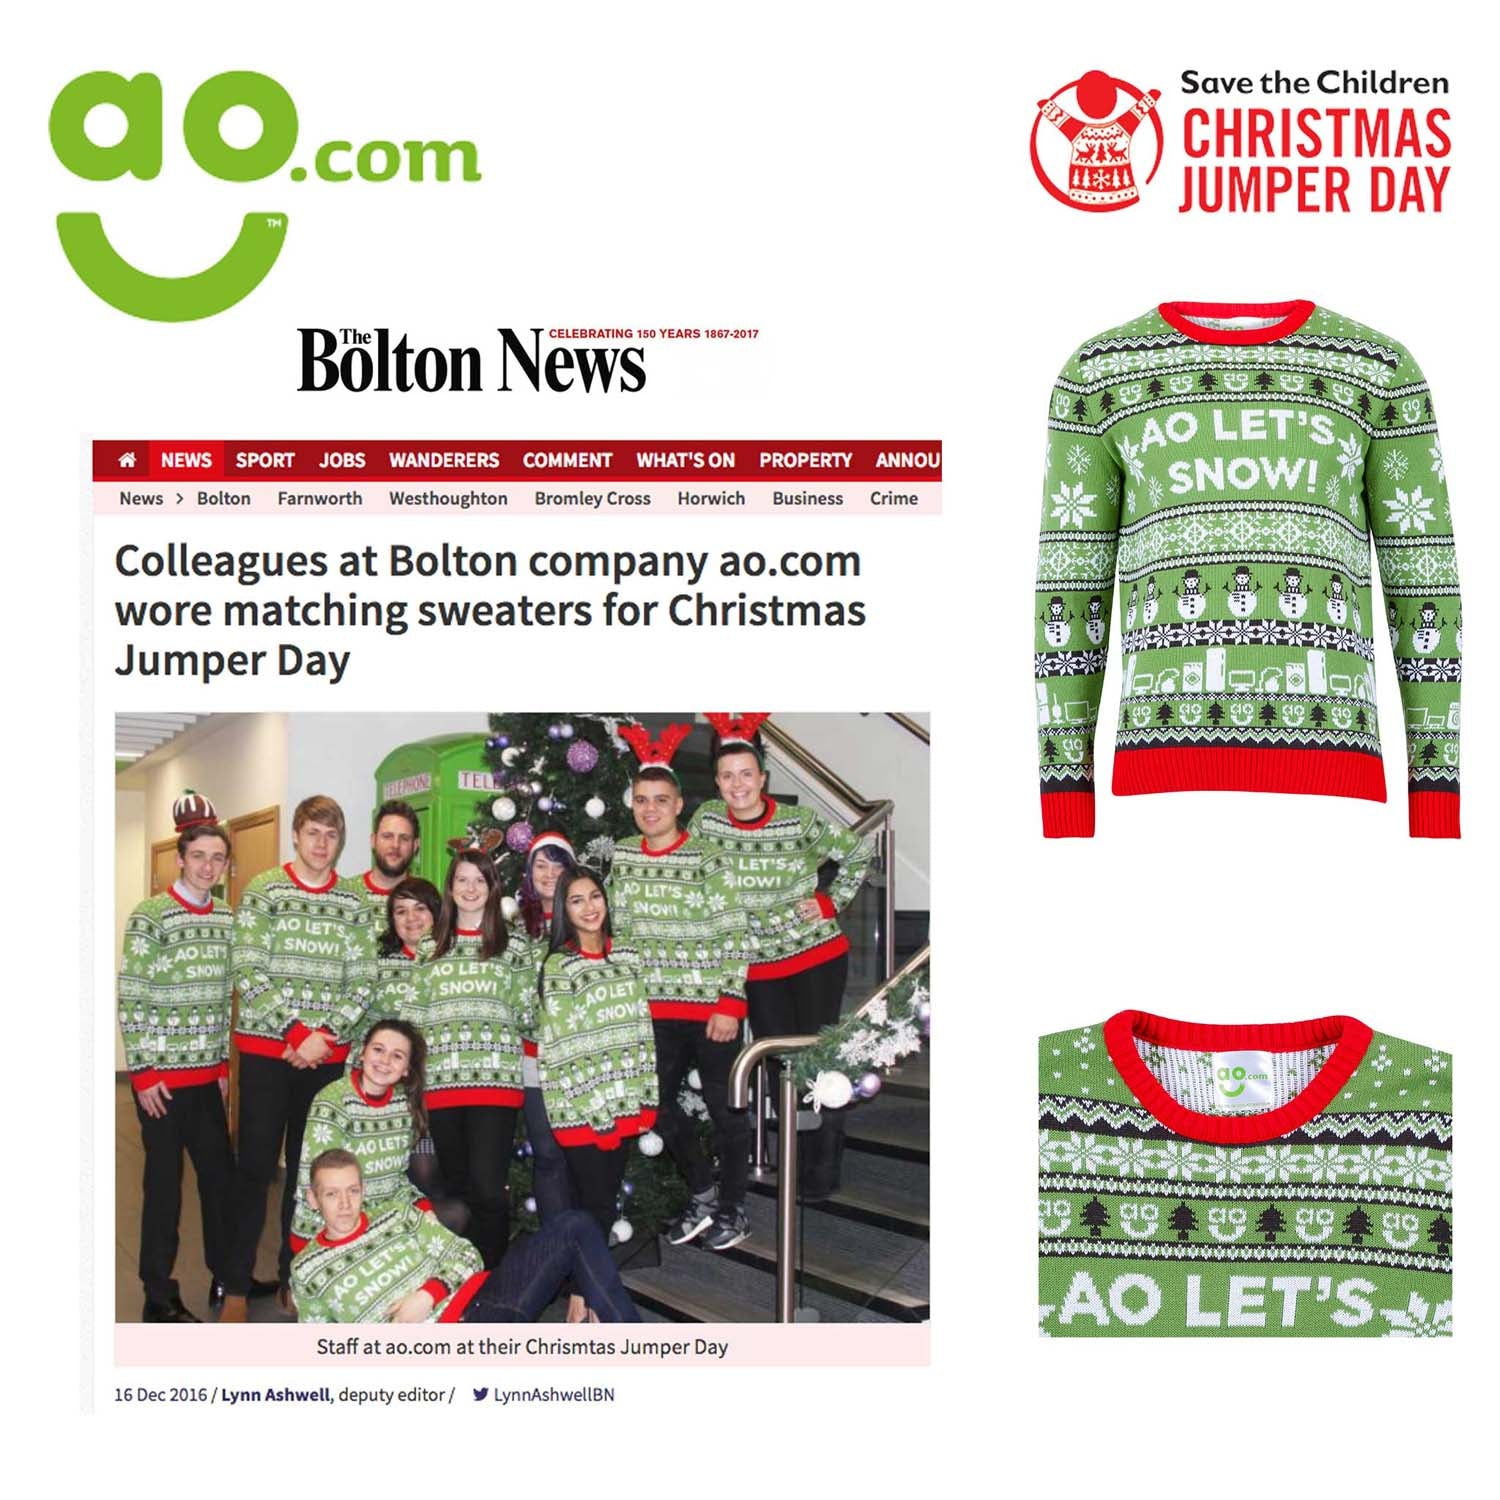 AO.com's Corporate Christmas Sweaters